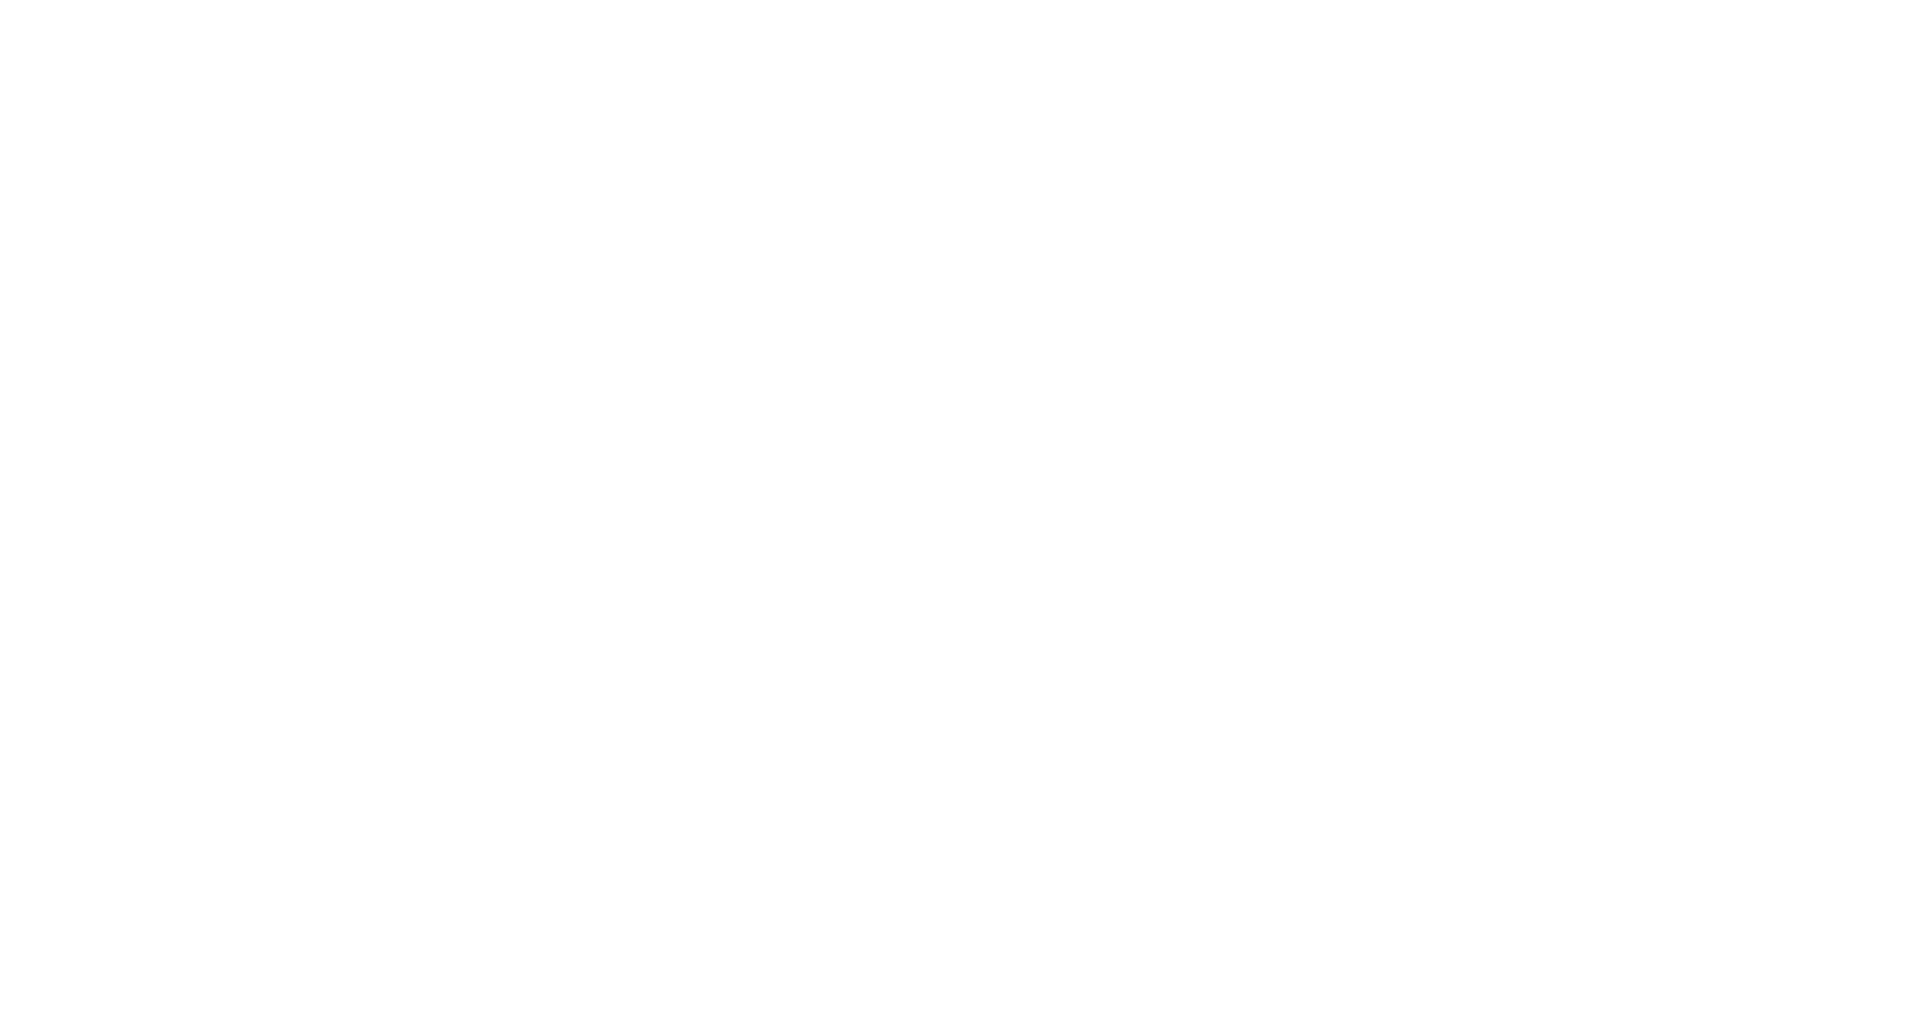 Early Bird Cafe